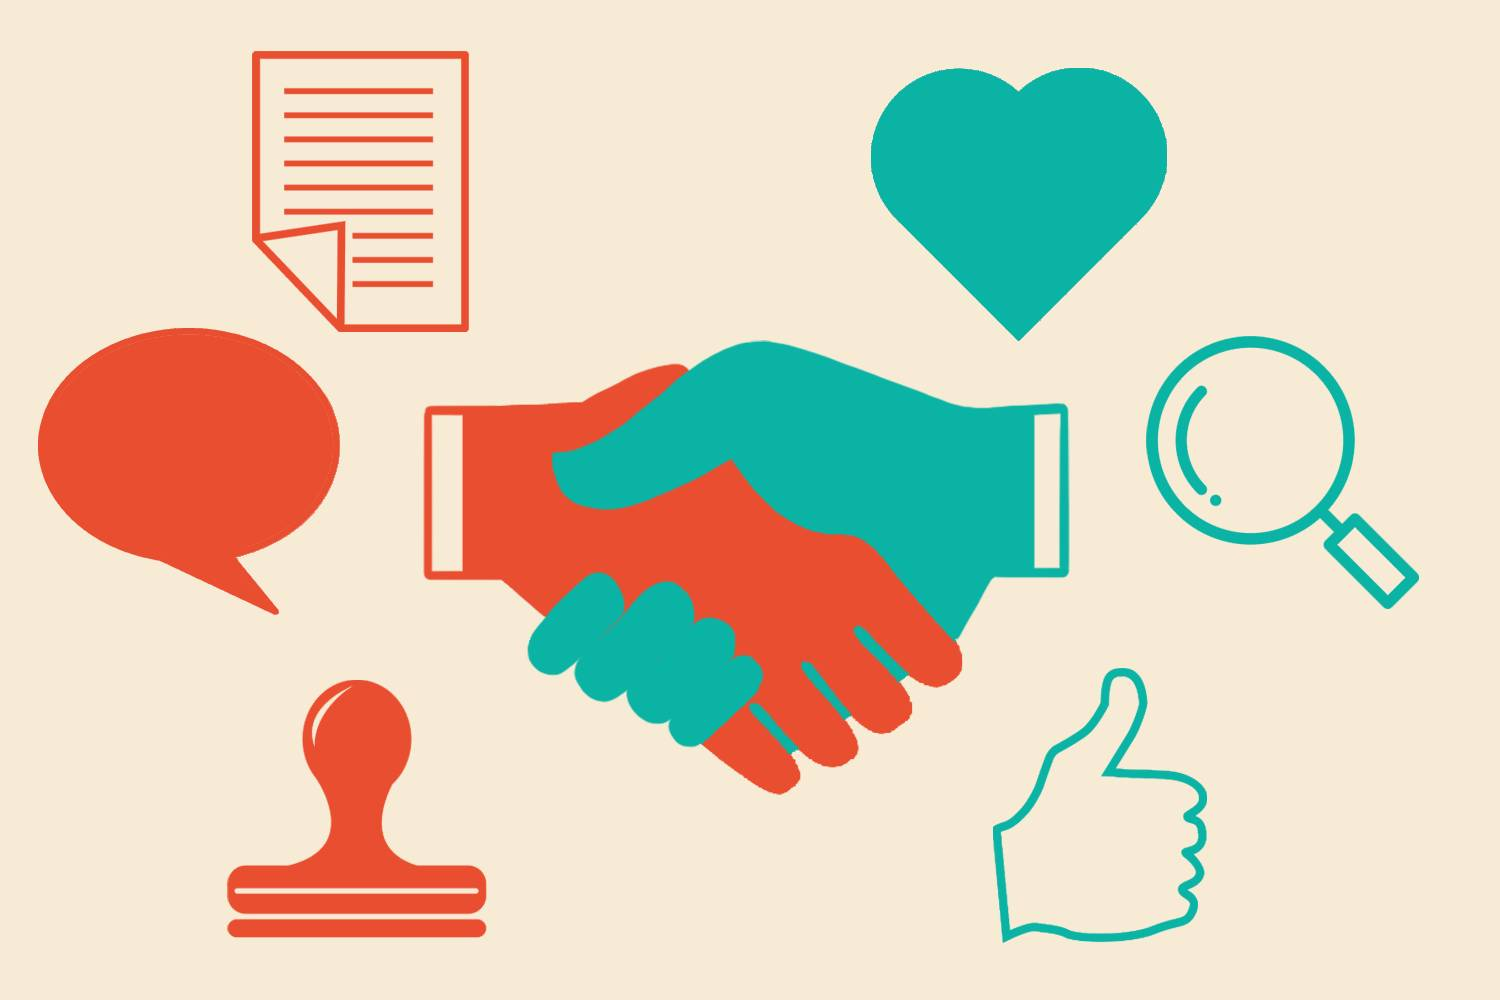 Infographic of a handshake with symbols of a stamp, document, and conversation bubble on one side and a thumbs up, search icon and heart on the other side representing two sides to a transaction